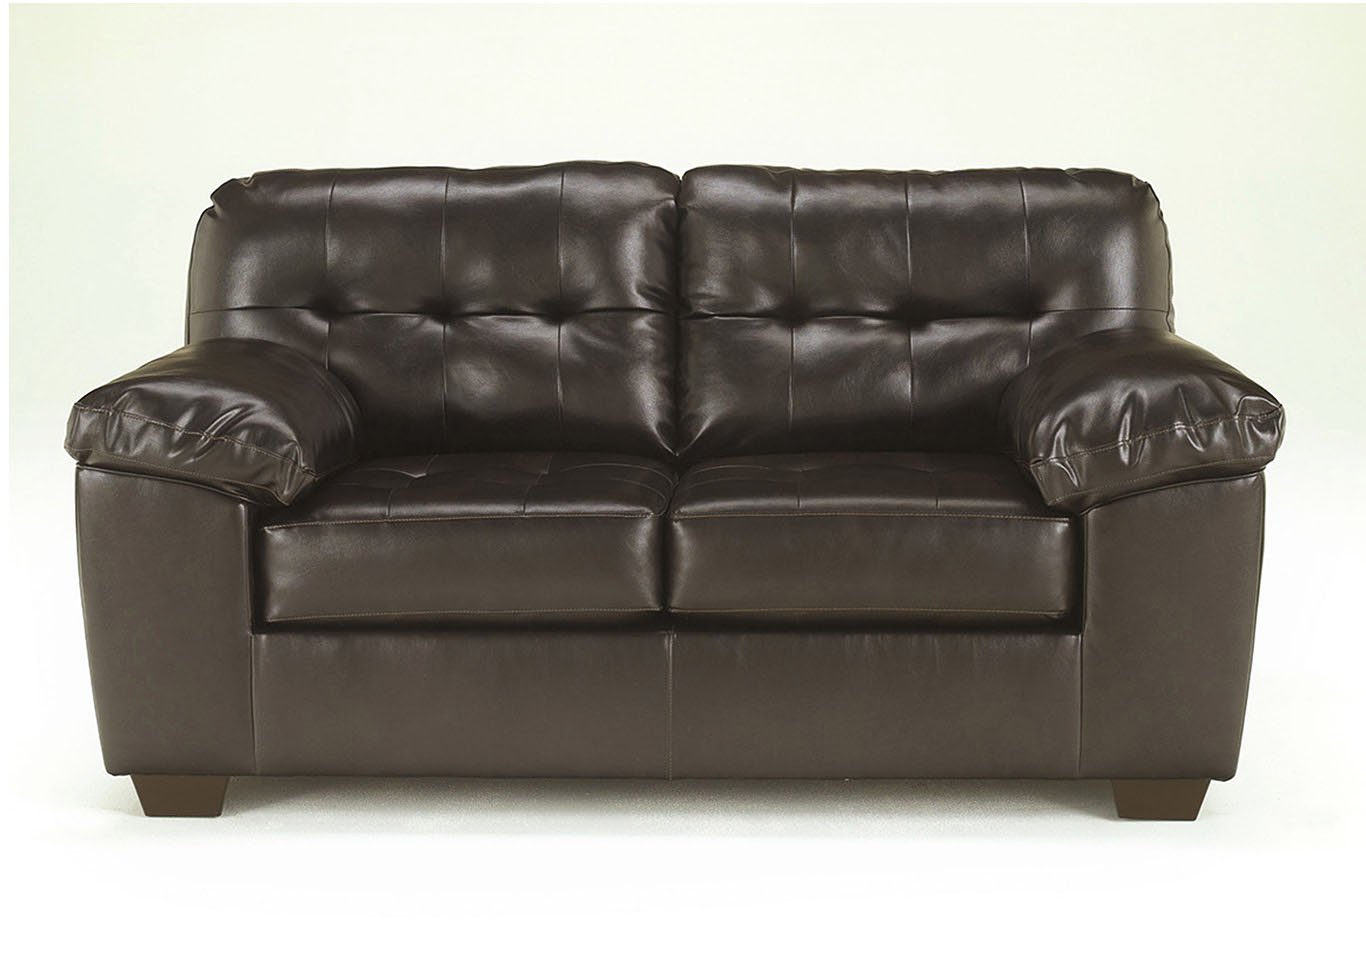 Alliston DuraBlend Chocolate Loveseat,Signature Design By Ashley